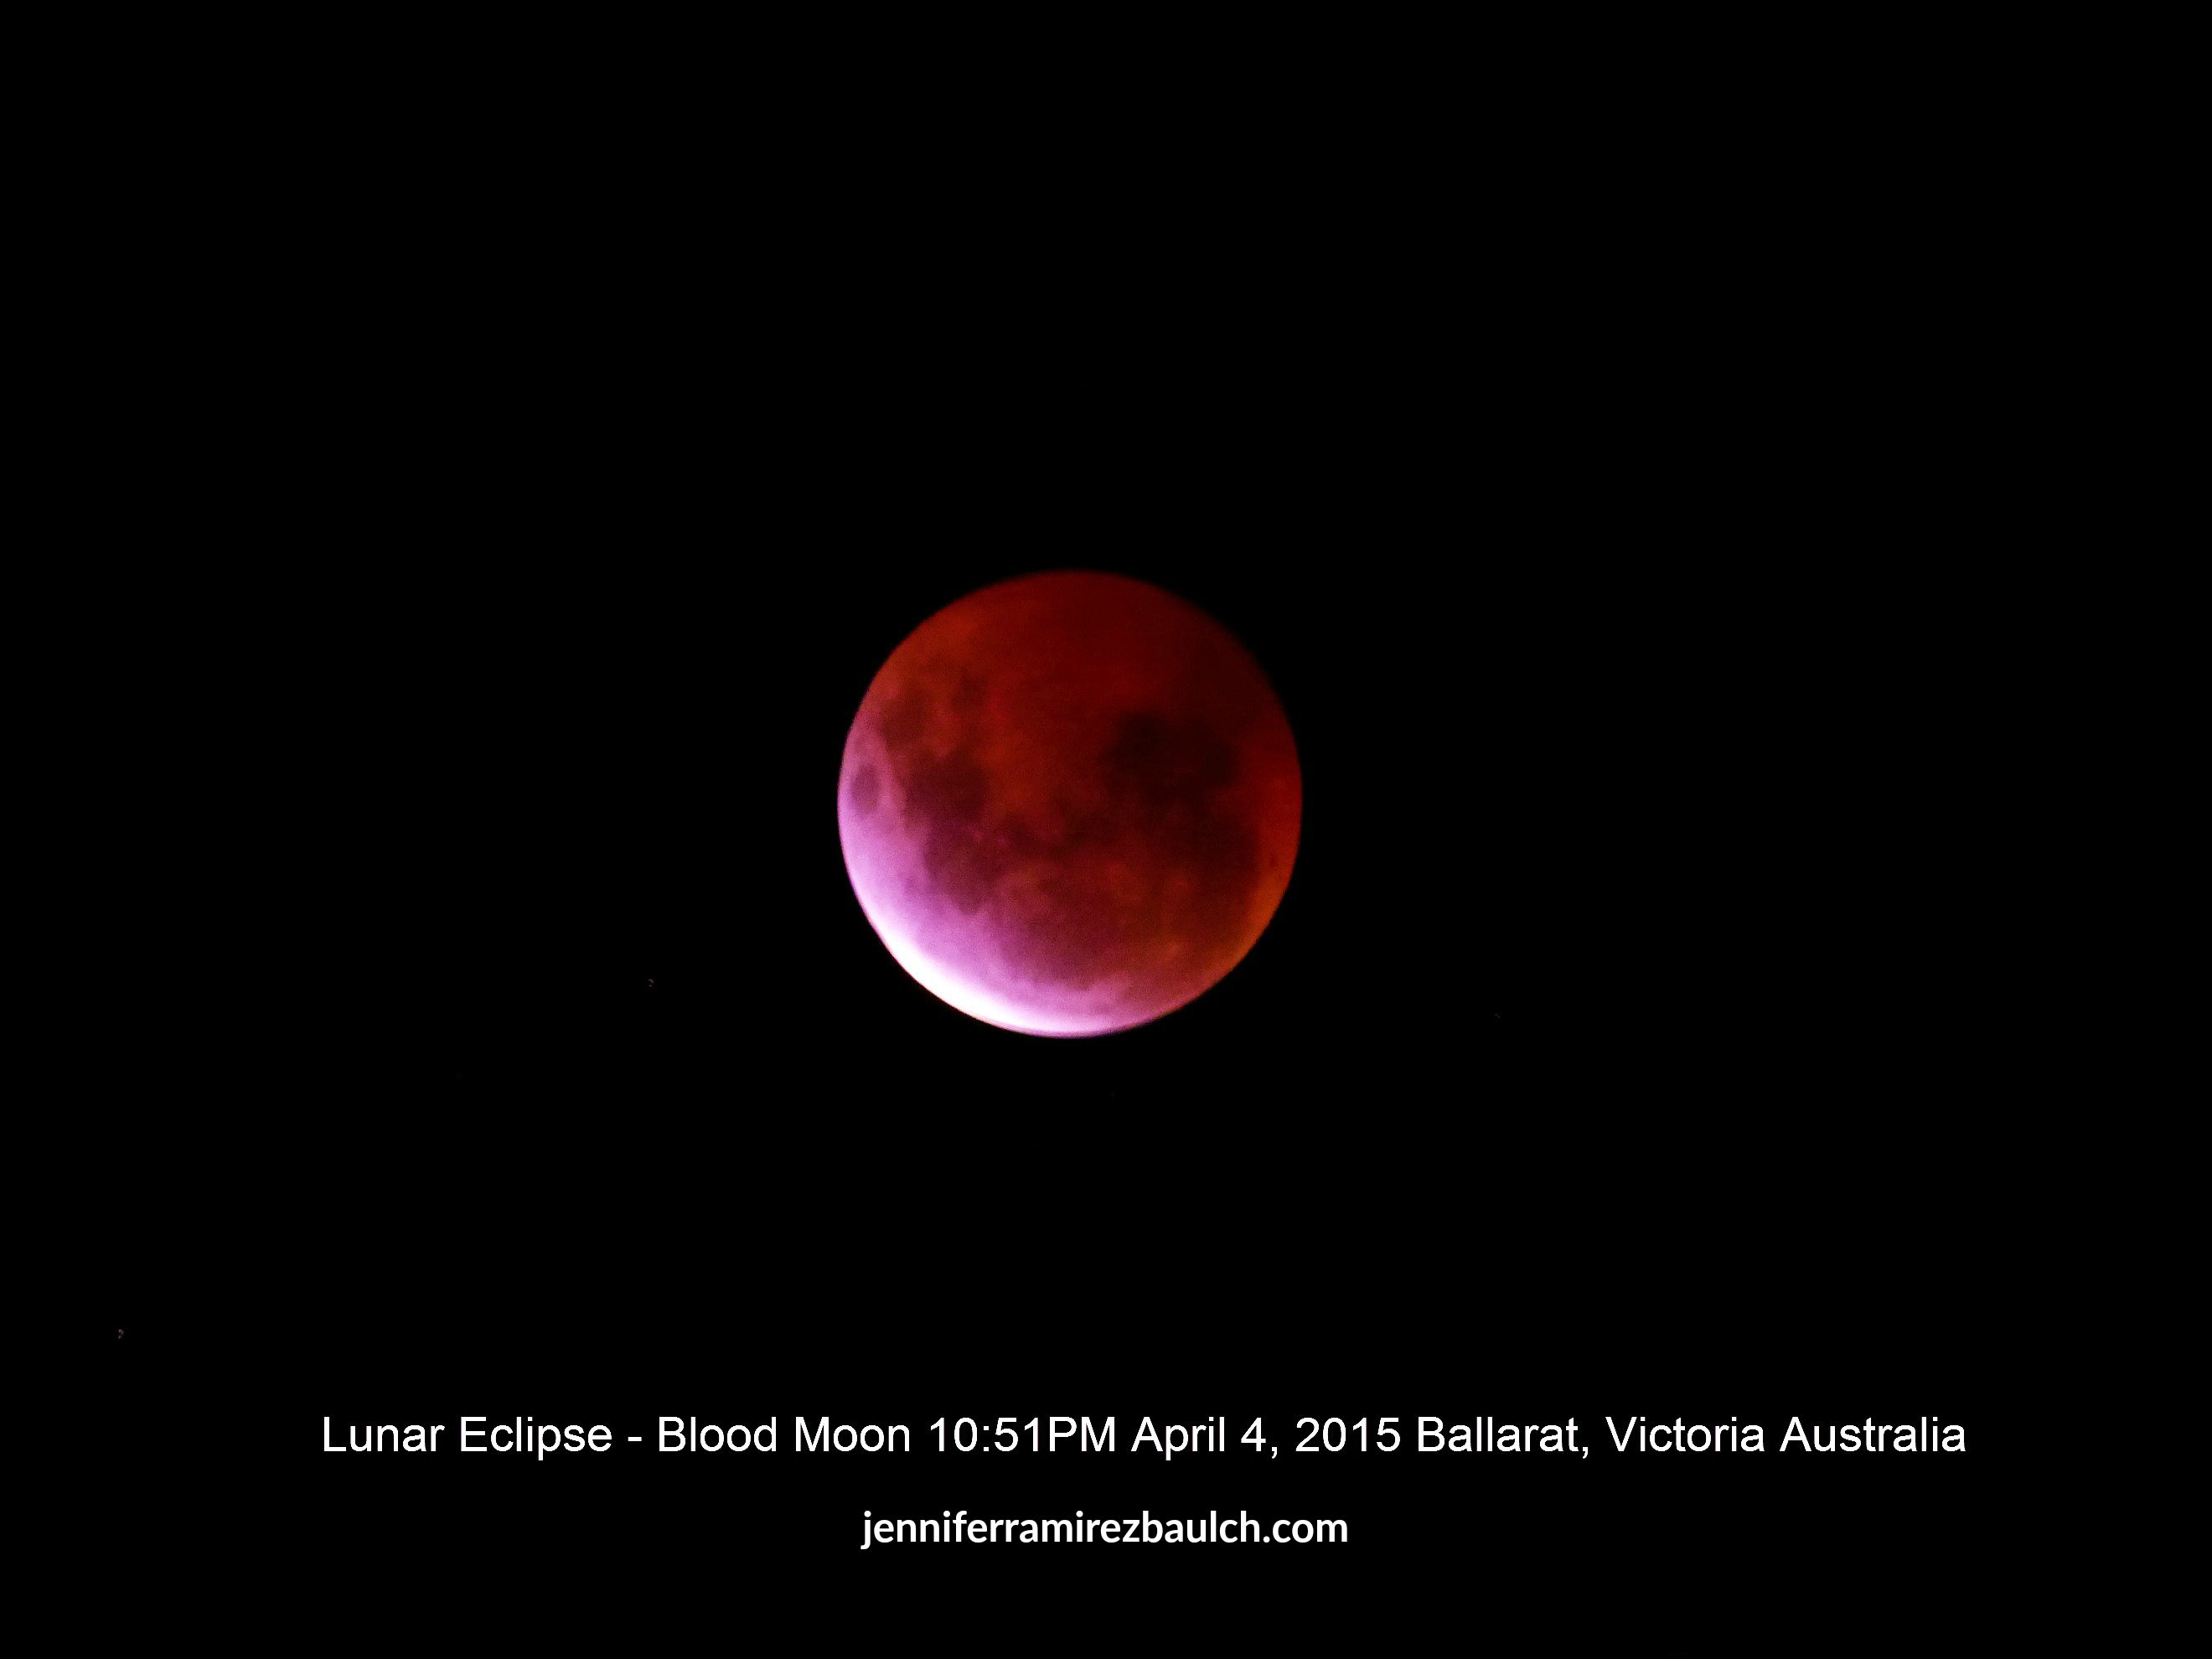 Blood Moon April 4, 2015